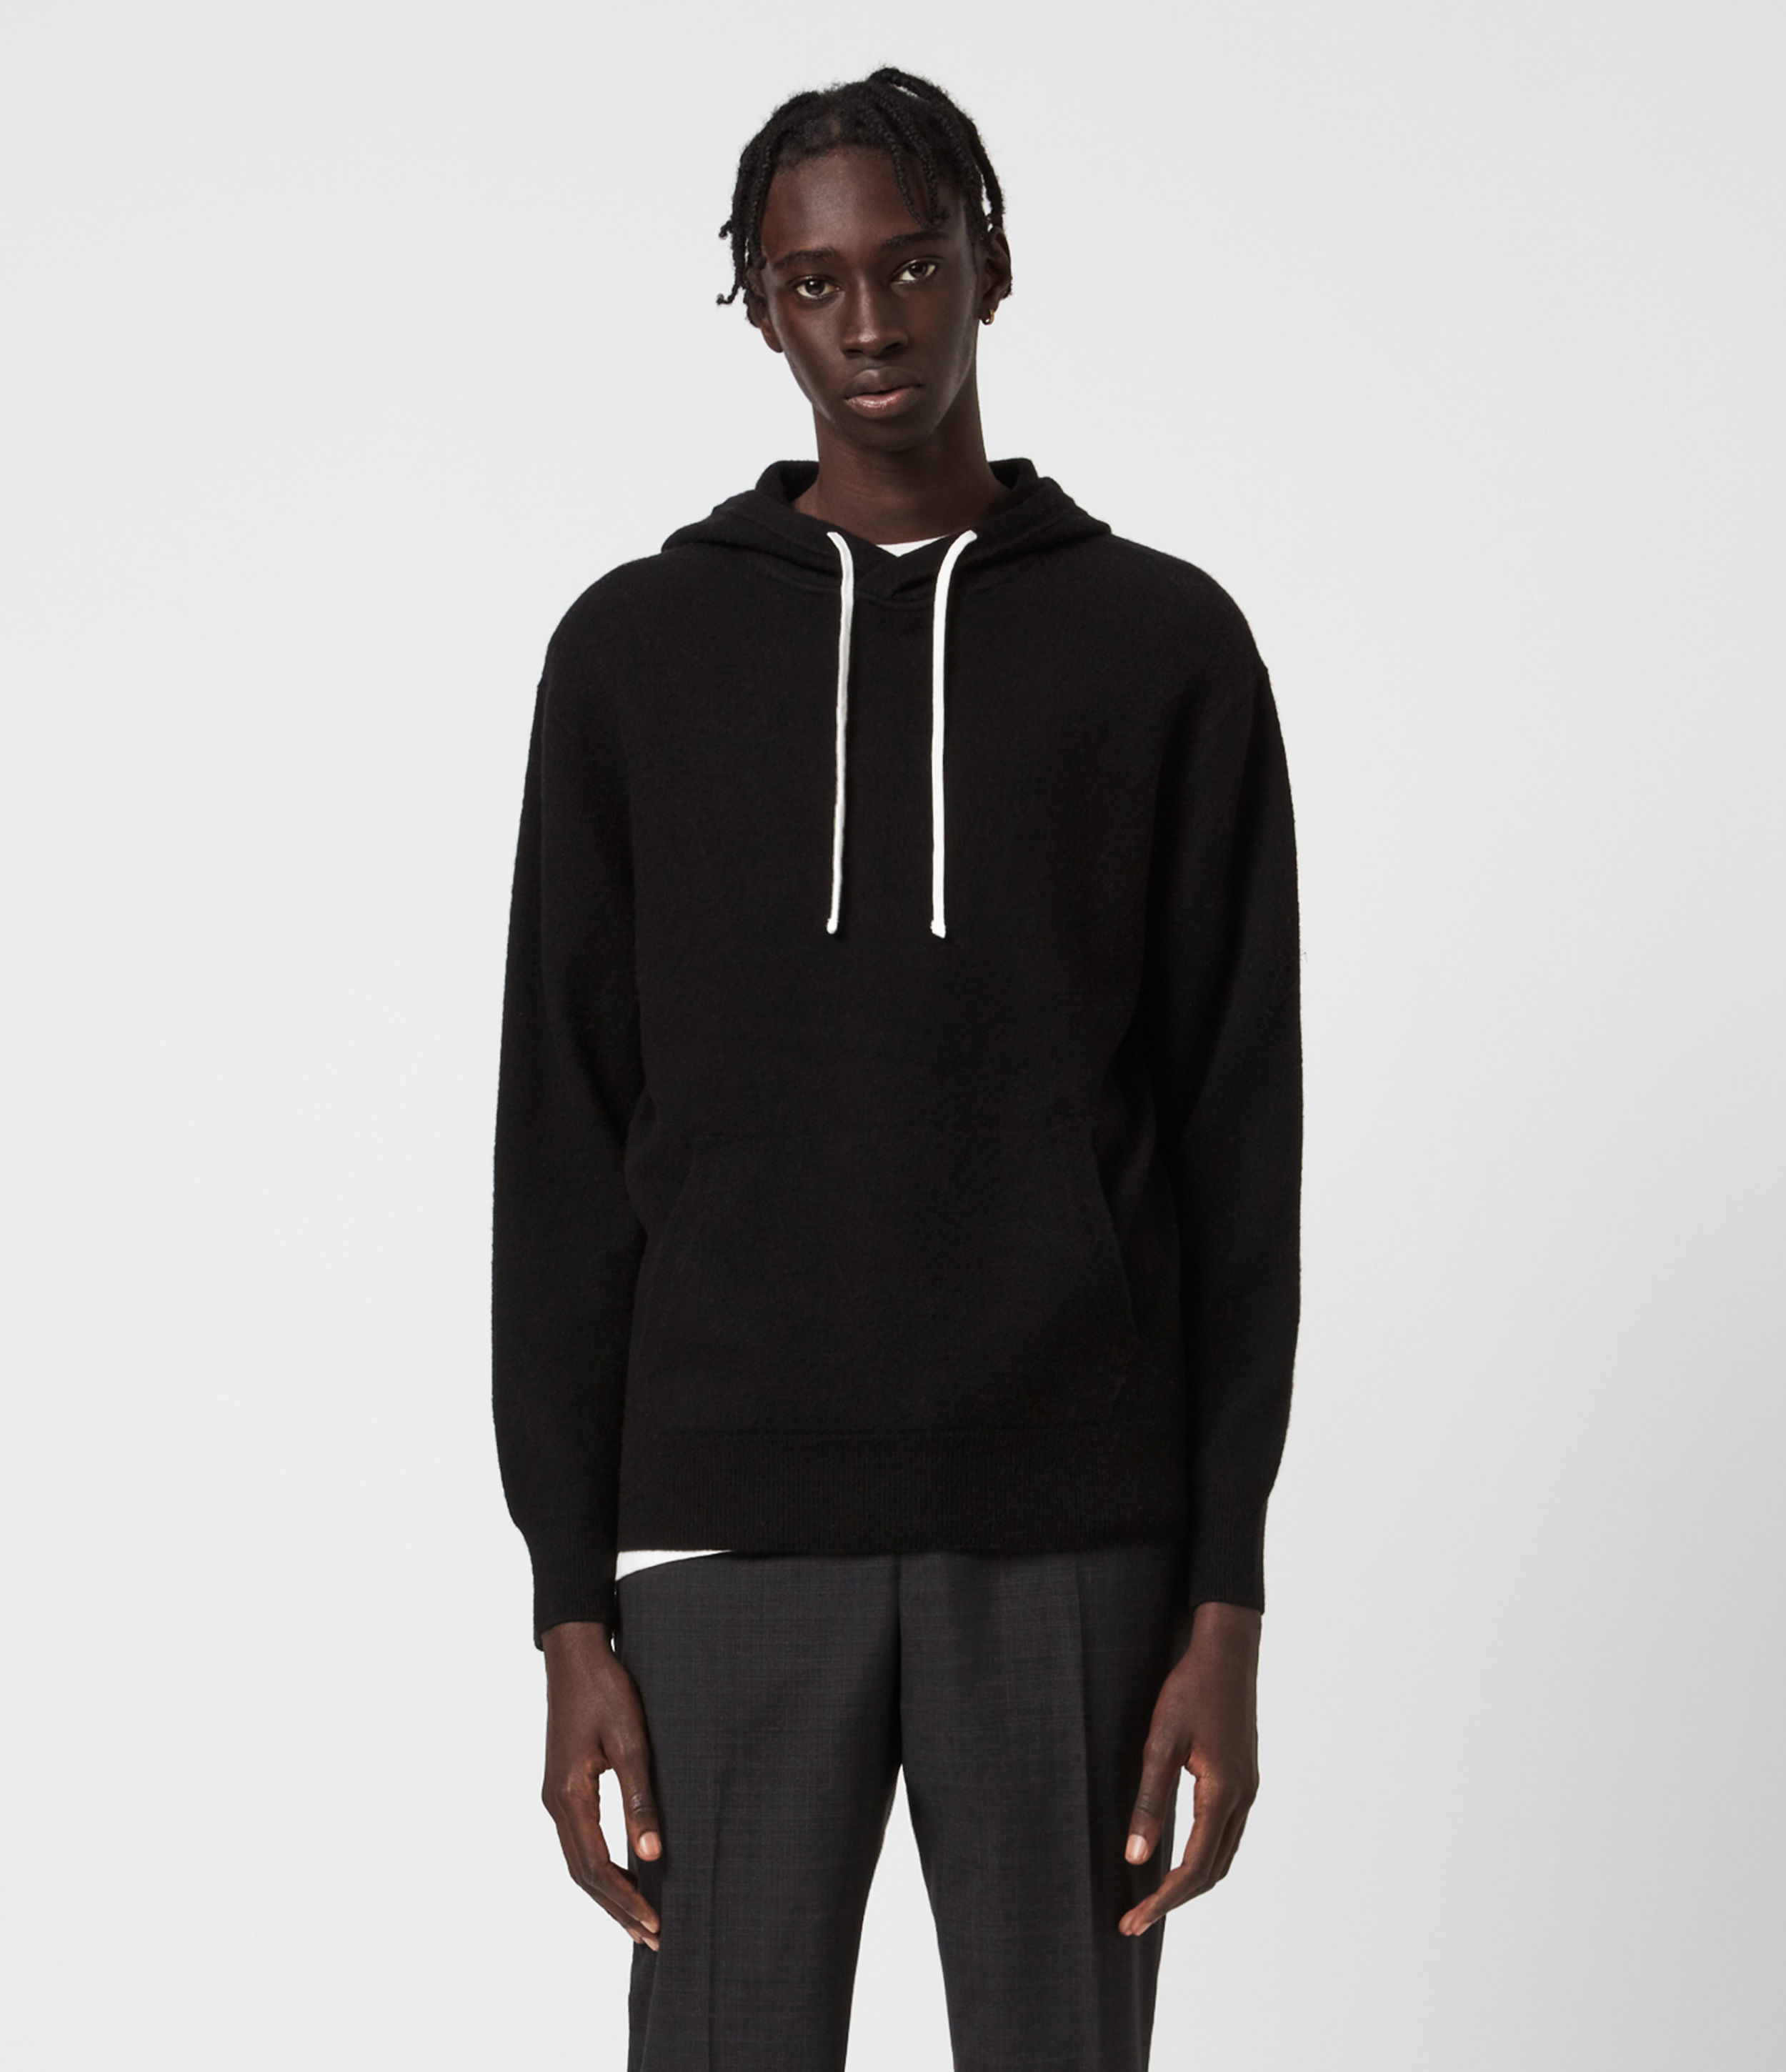 AllSaints Men's Wool Relaxed Fit Lori Hoodie, Black, Size: S